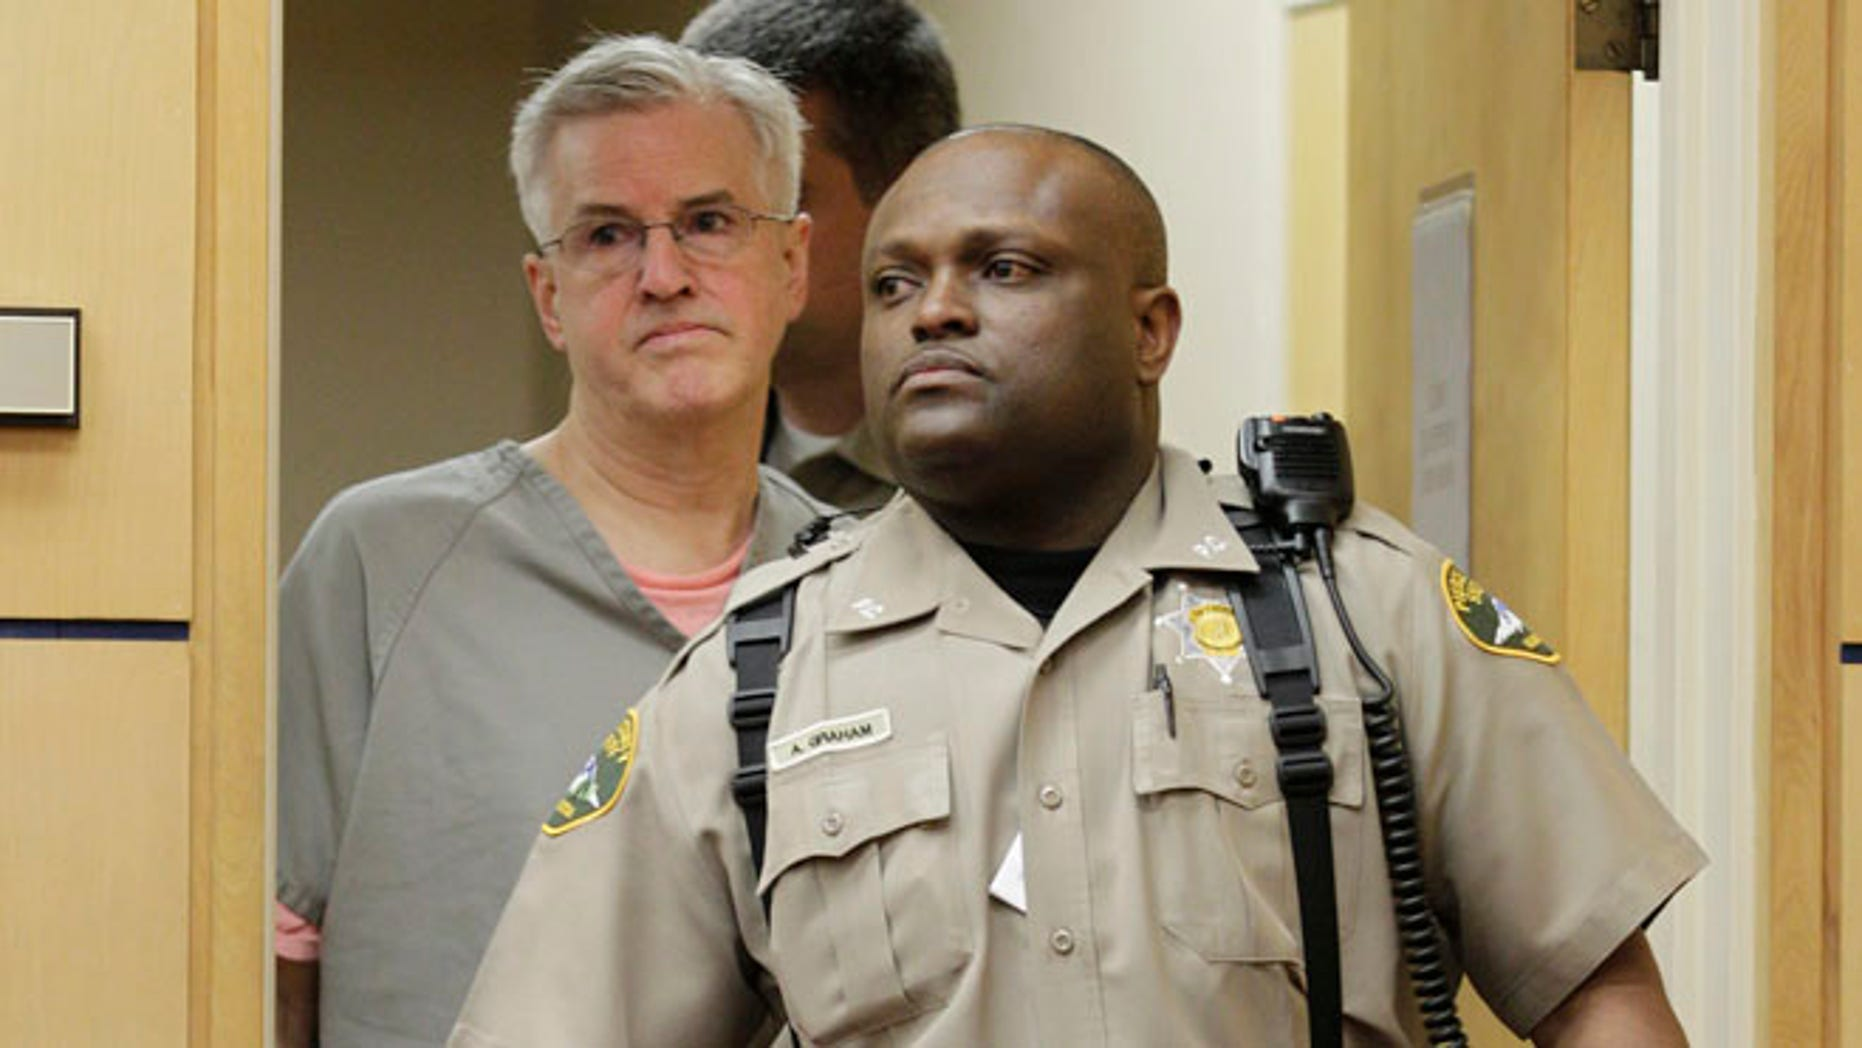 April 23: Steve Powell is led into in a Pierce County Superior Court hearing in Tacoma, Wash.